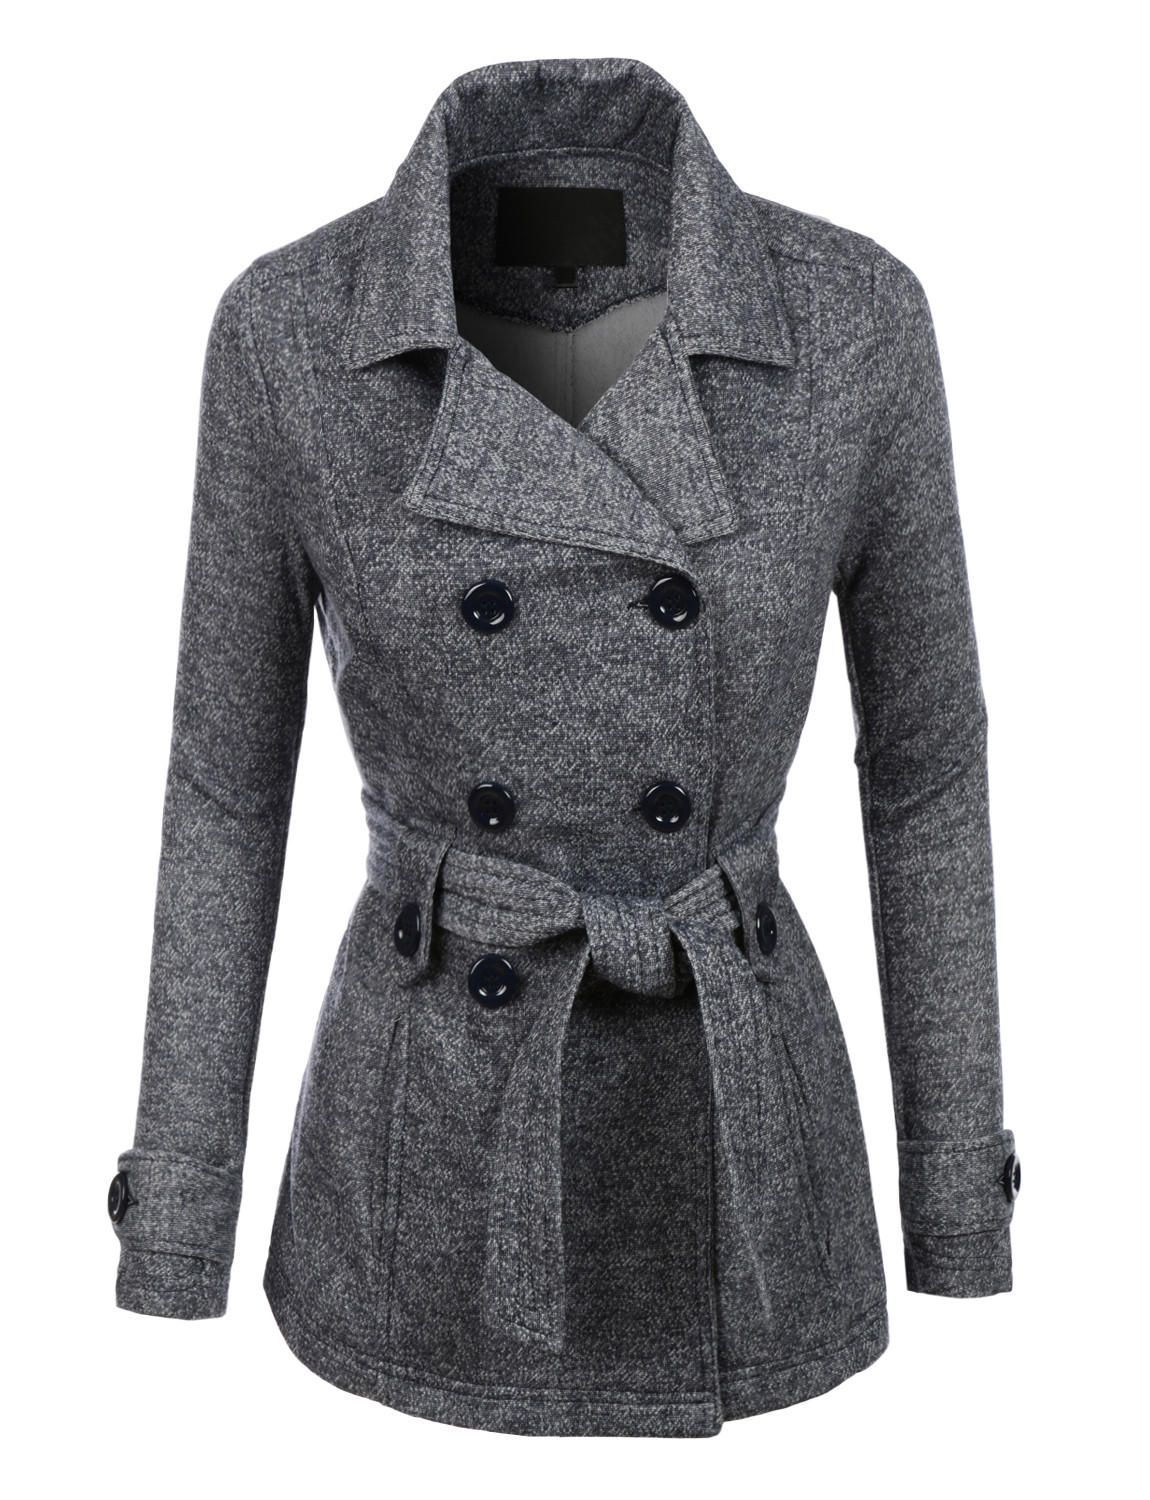 42e6cd3a57ce LE3NO Womens Double Breasted Fleece Pea Coat Jacket with Pockets from  LE3NO. Saved to Women s Outerwear.